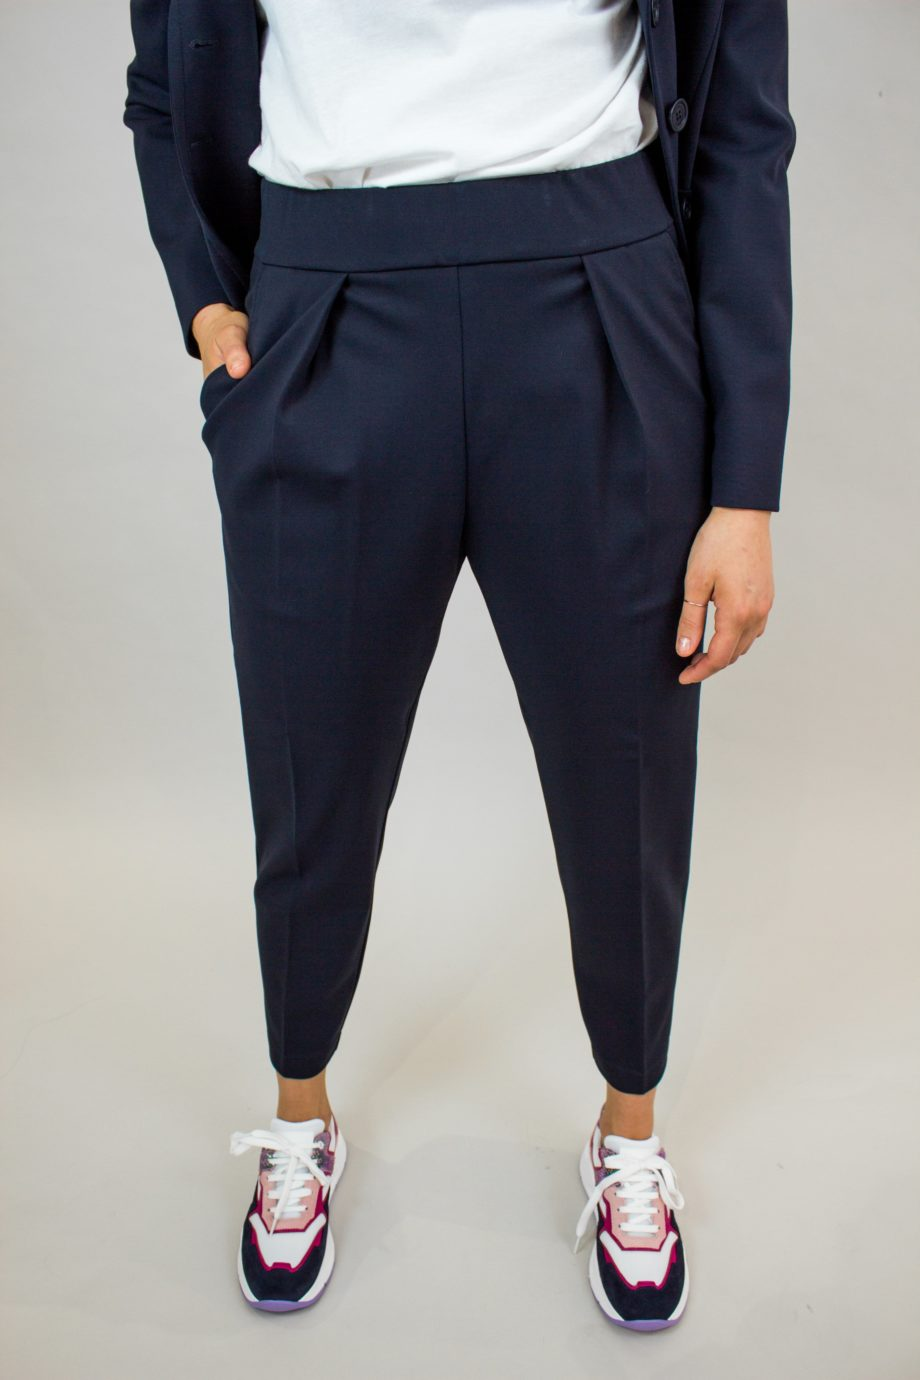 5. SEVENTY Dark blue trousers